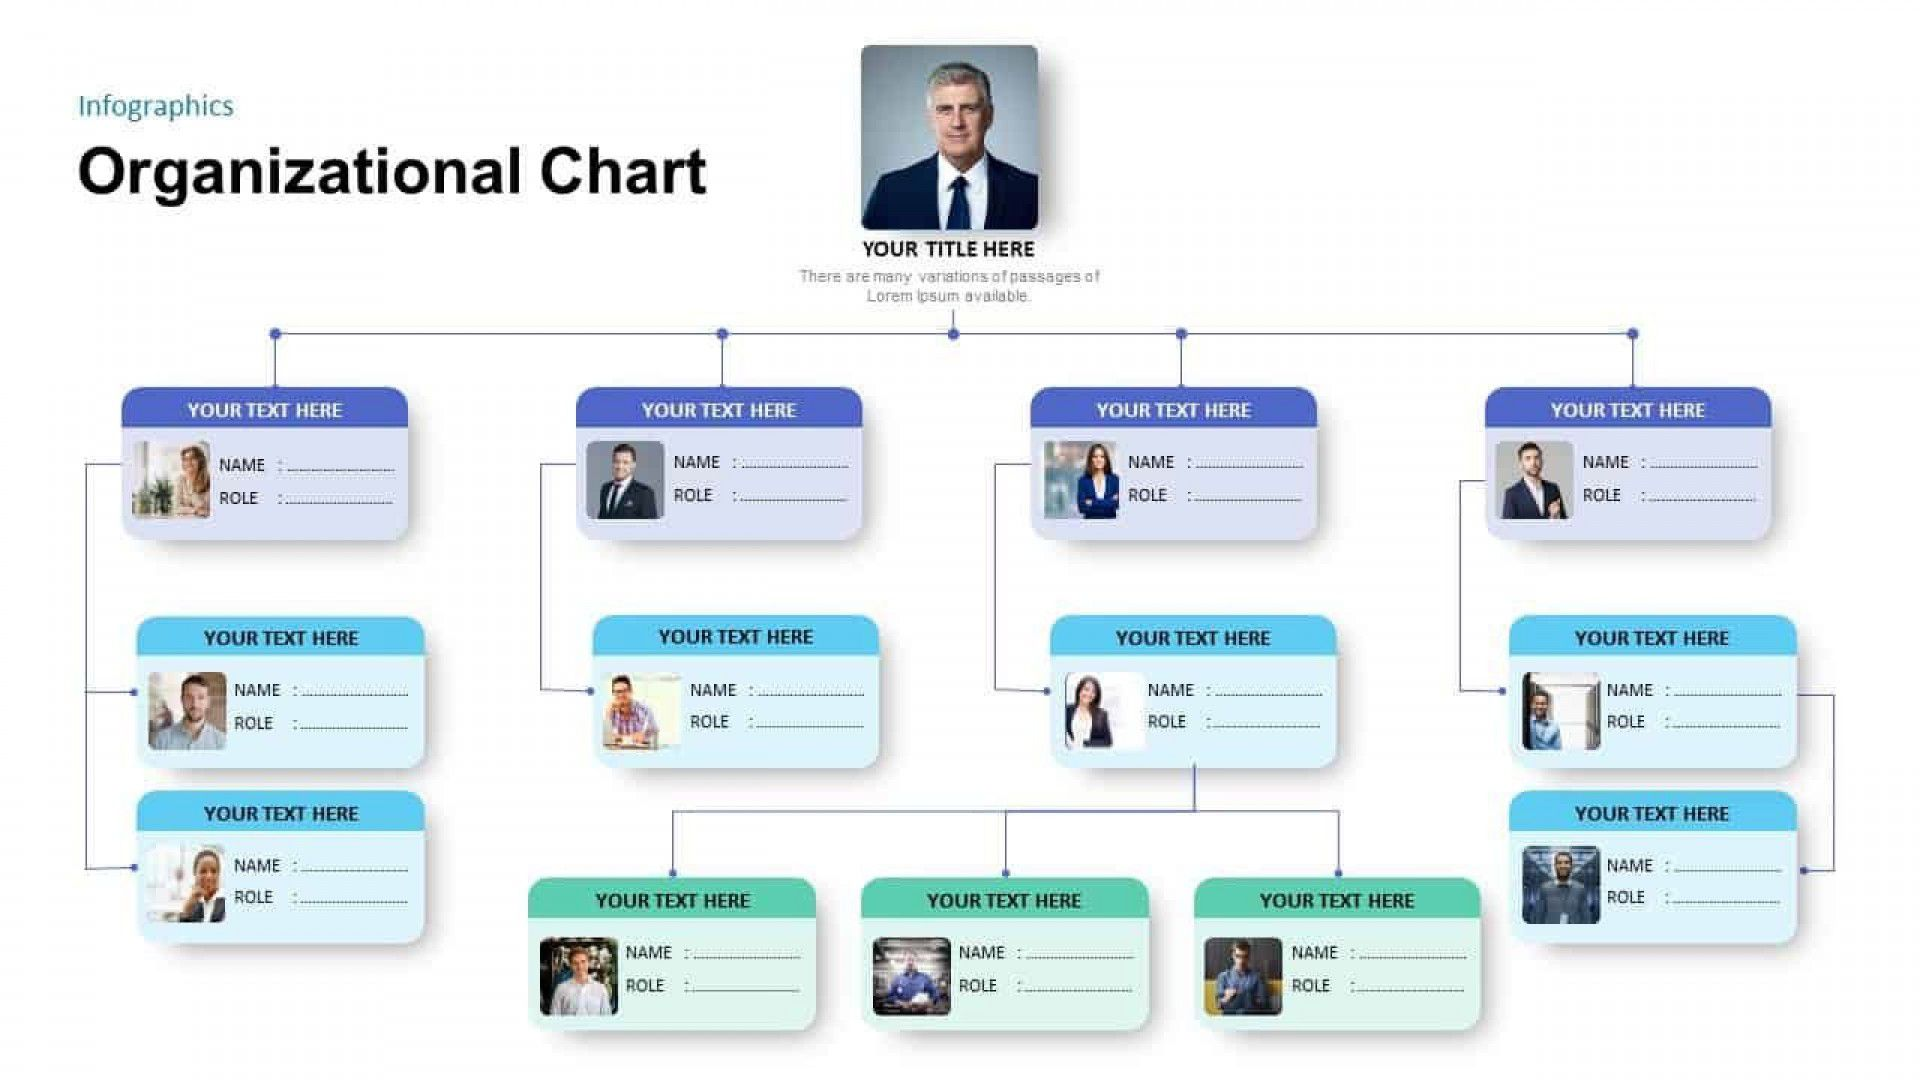 000 Unusual Microsoft Organisation Chart Template Picture  Visio Organization Excel OfficeFull